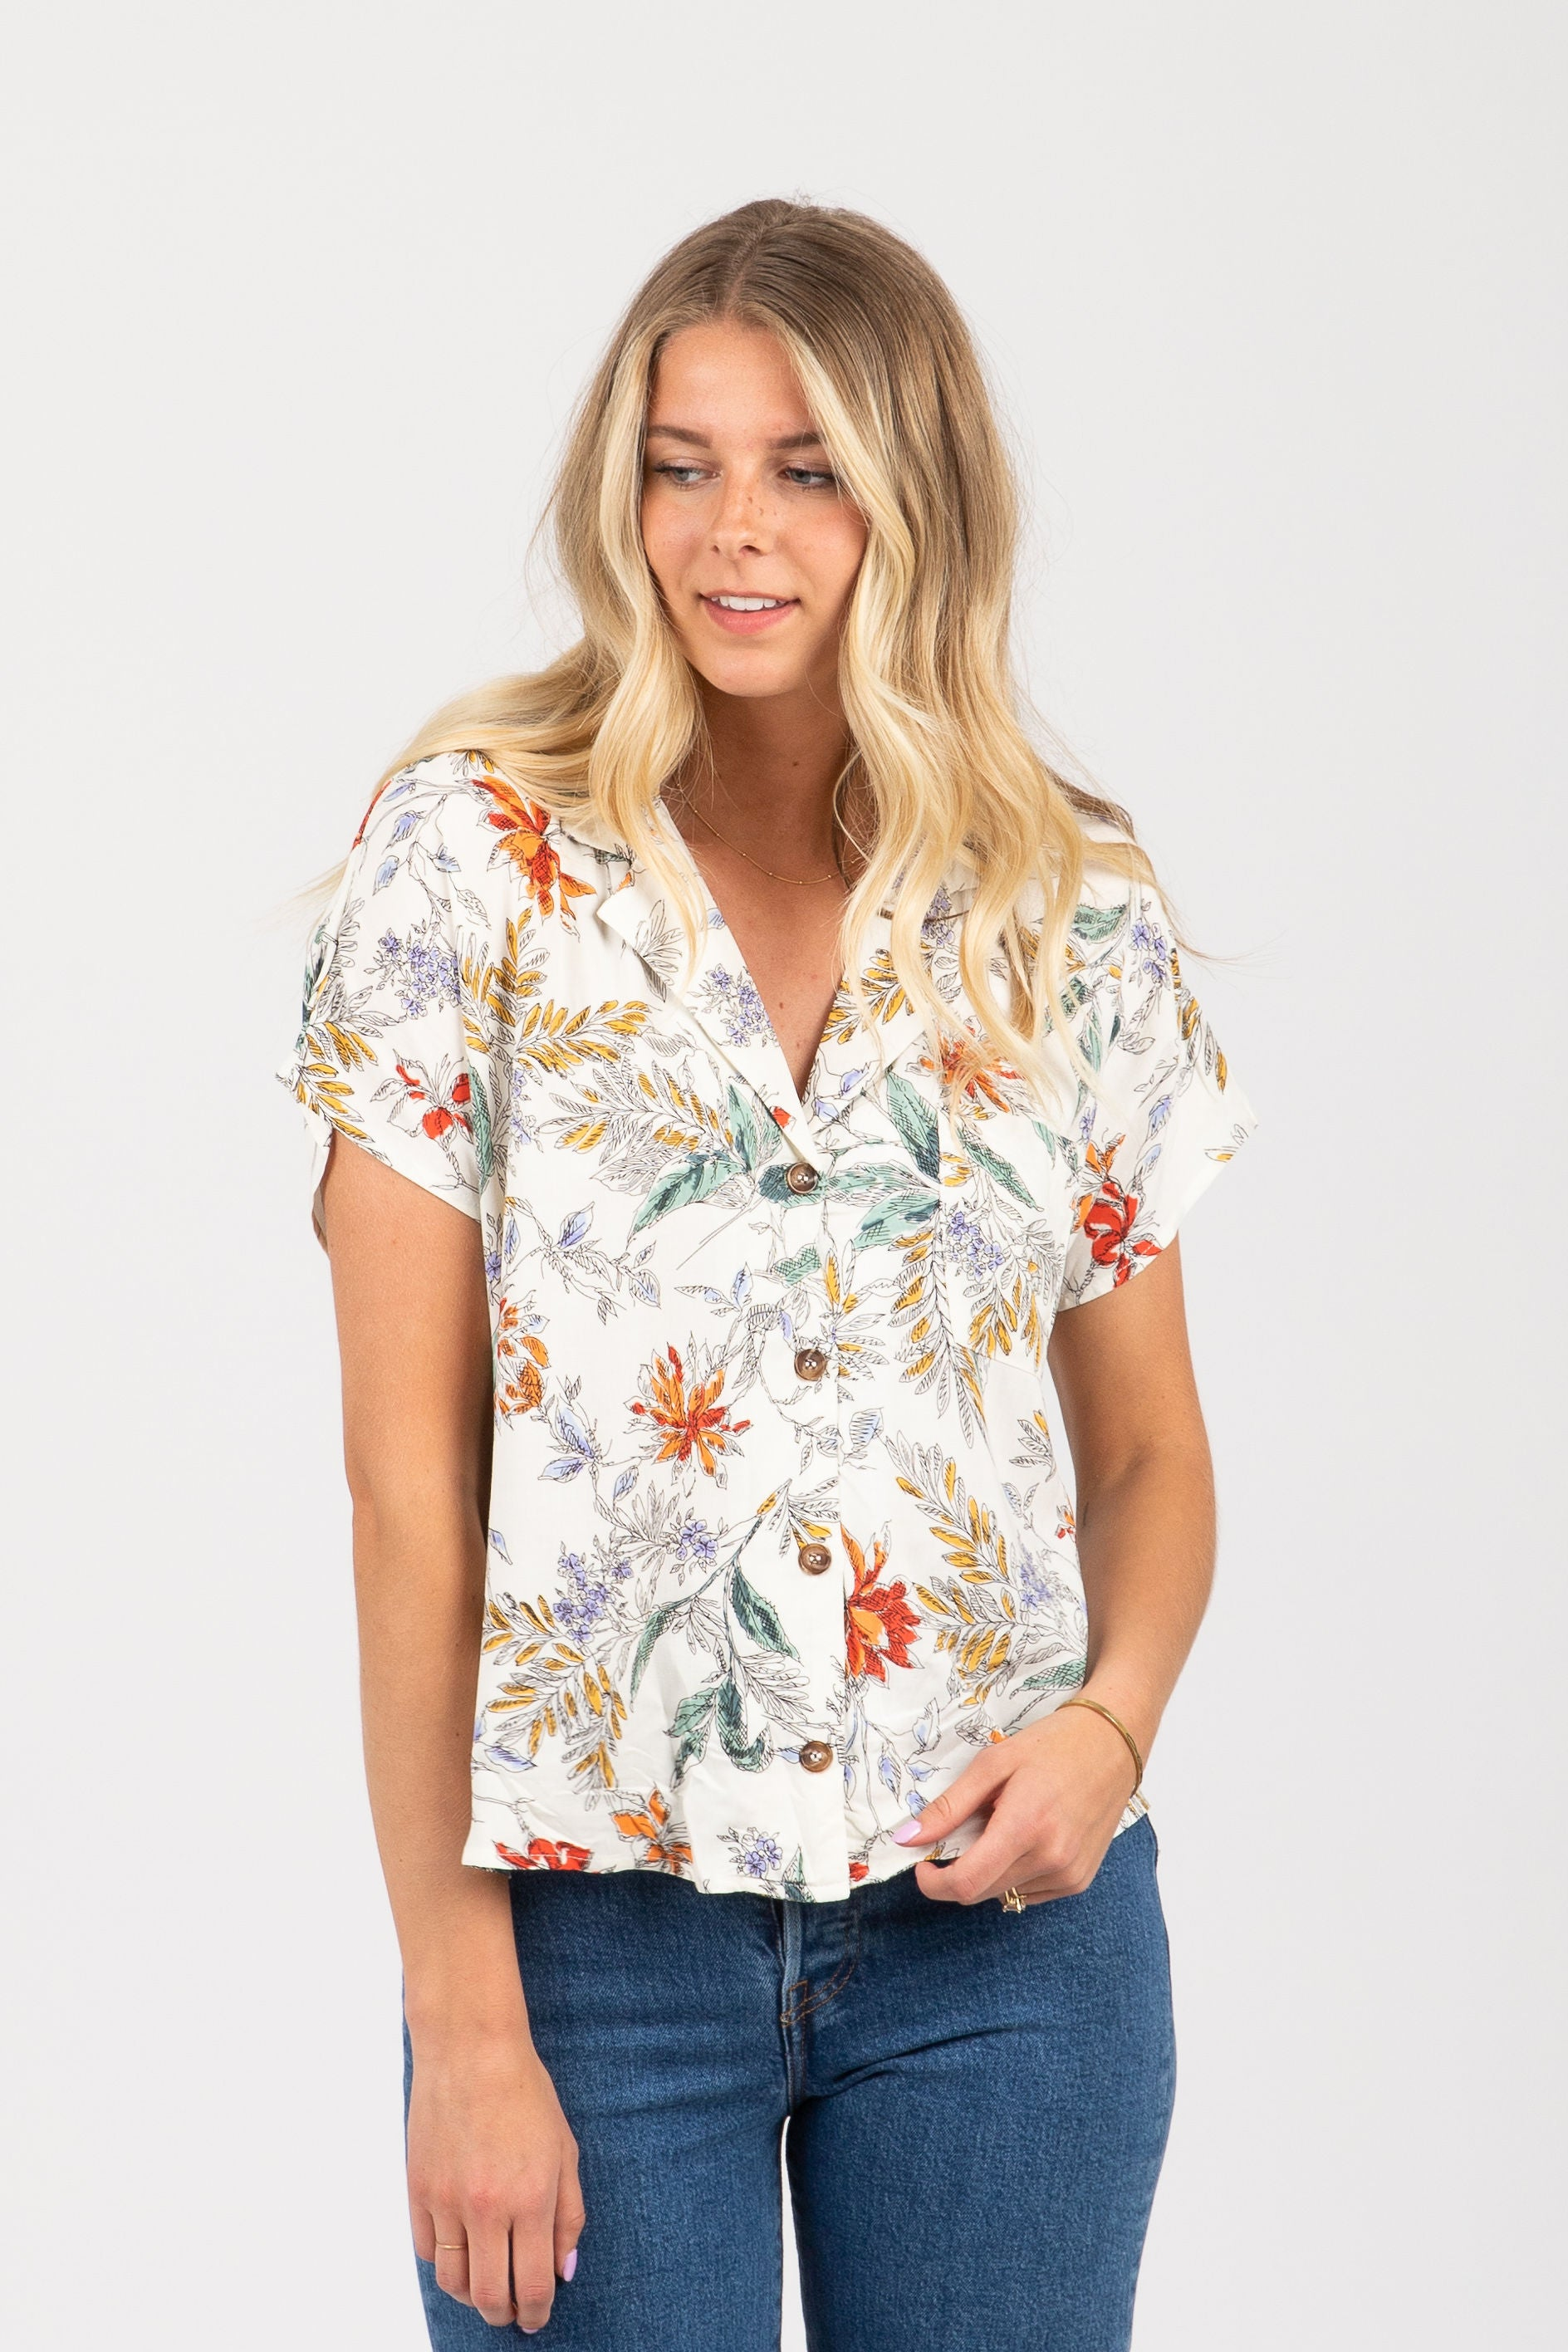 The Tempting Floral Button Up Blouse in White